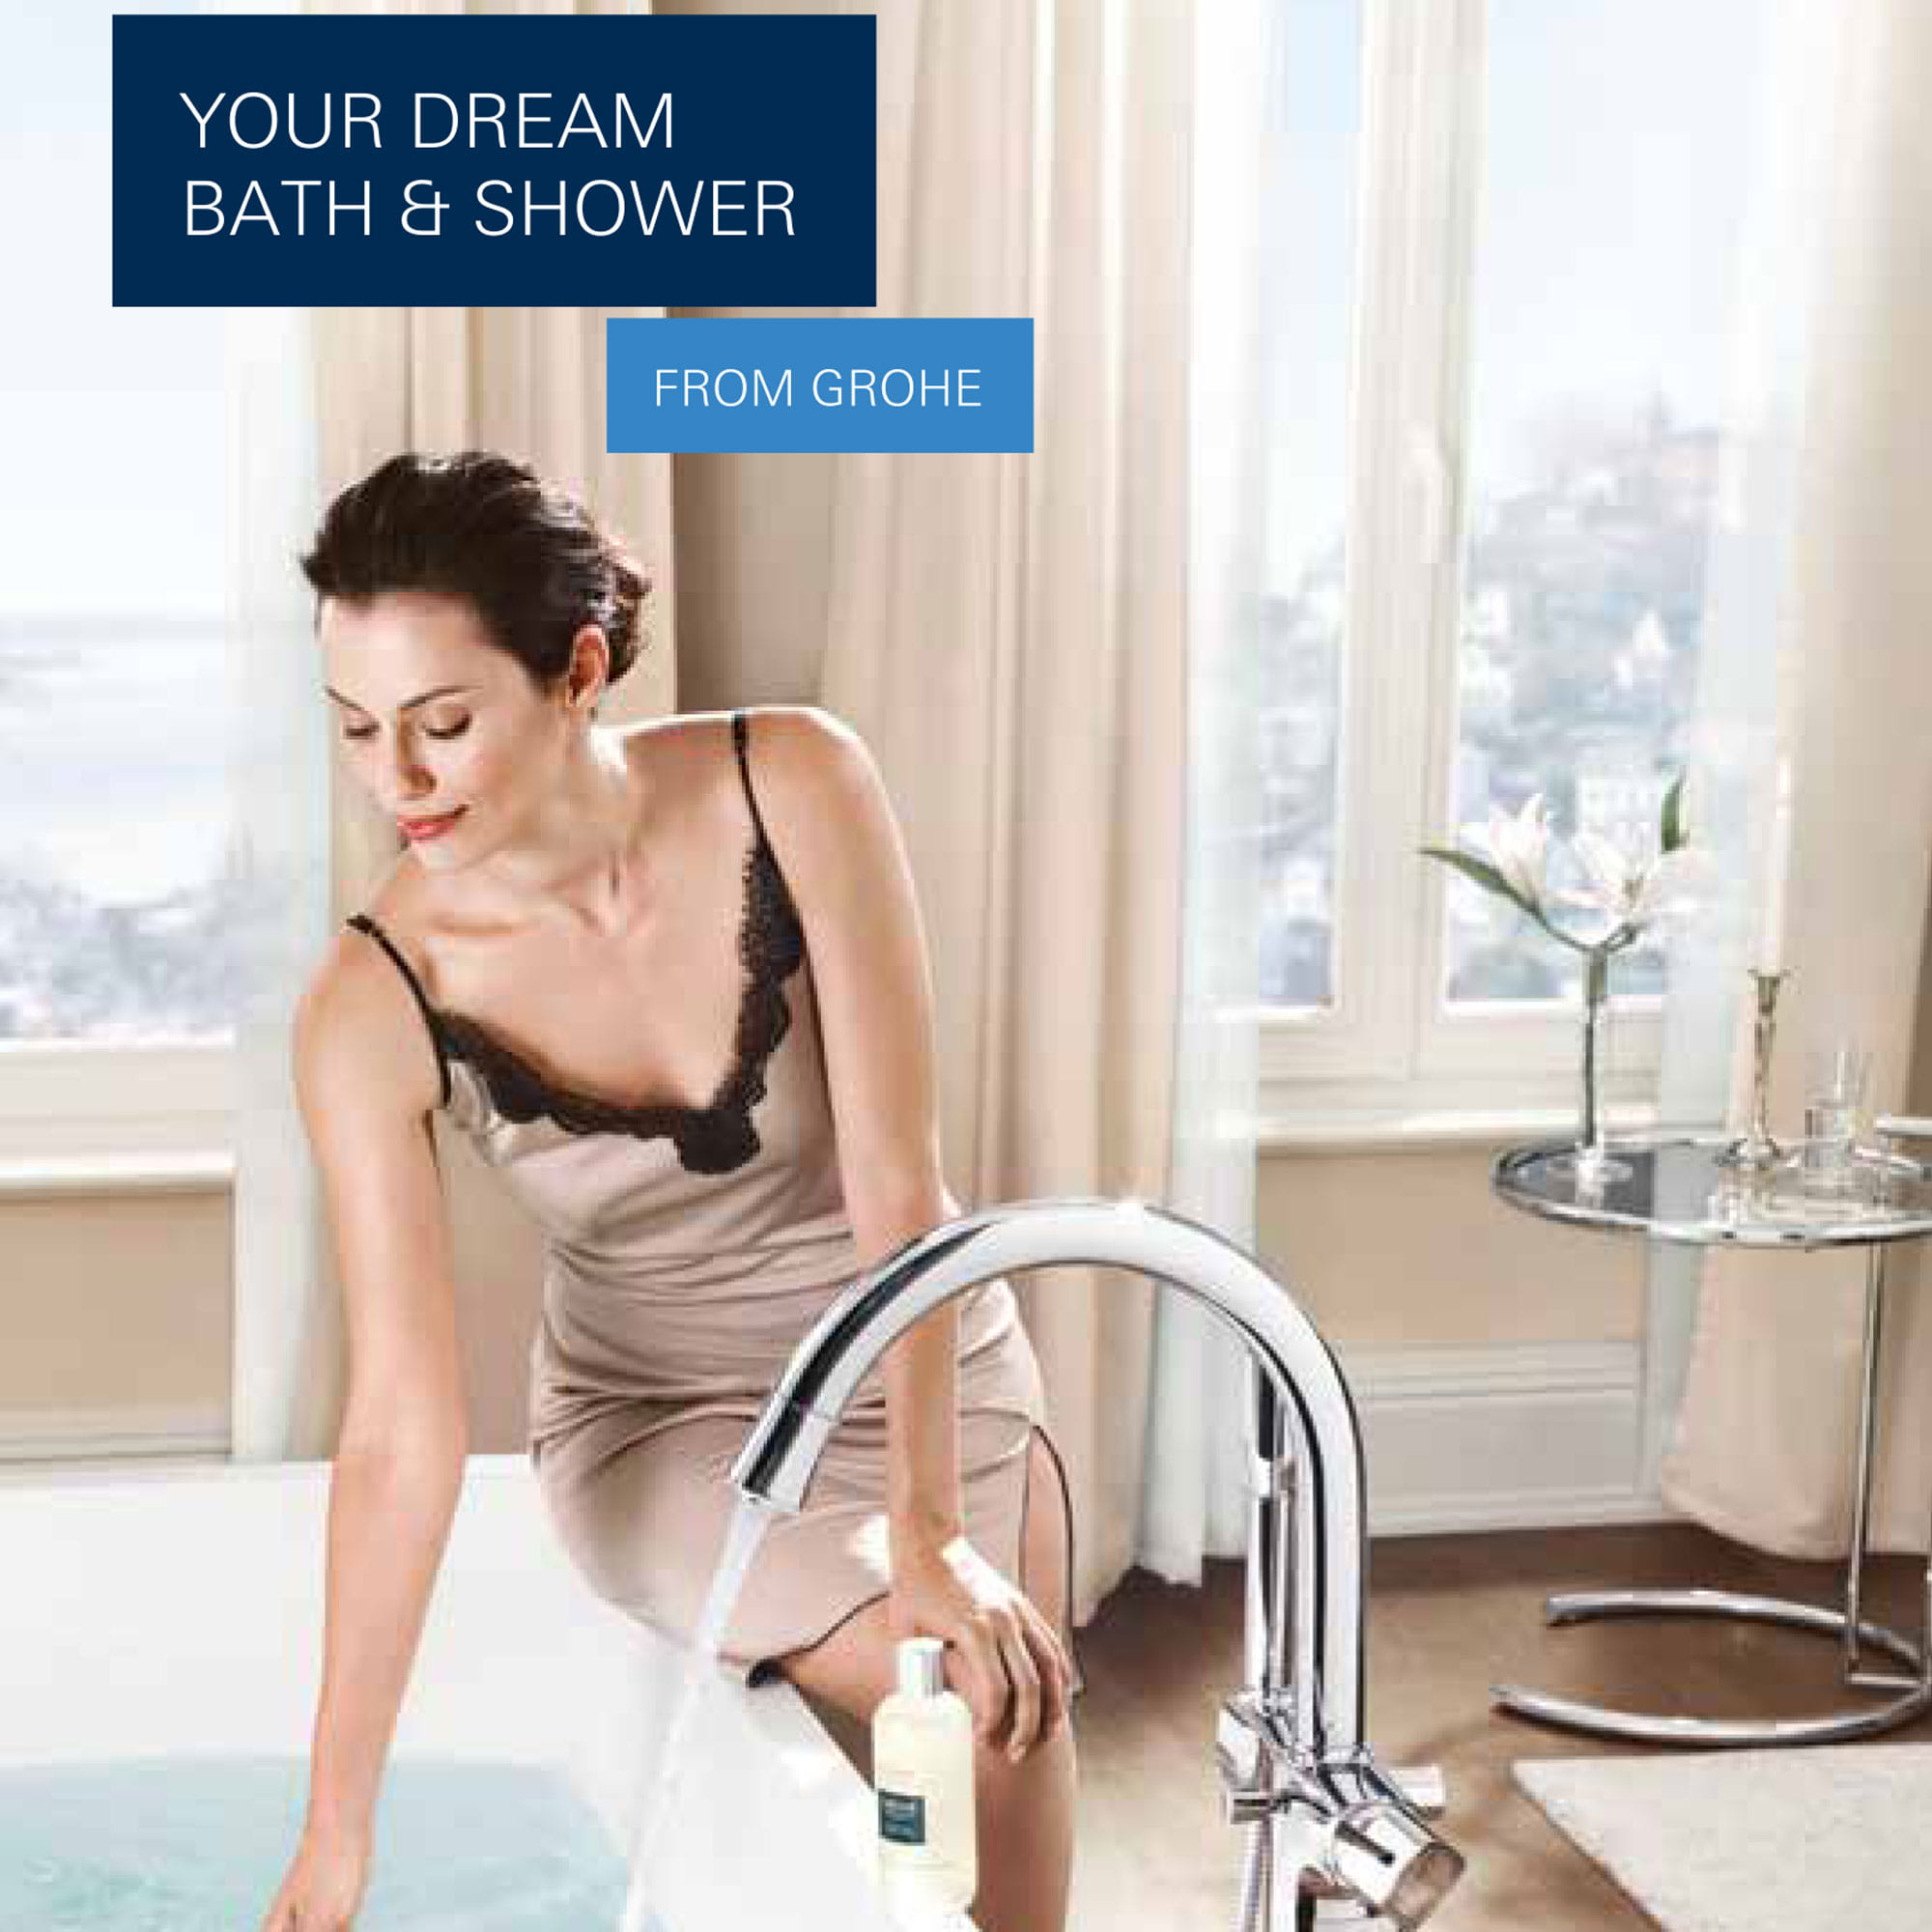 woman testing bathtub water with running faucet